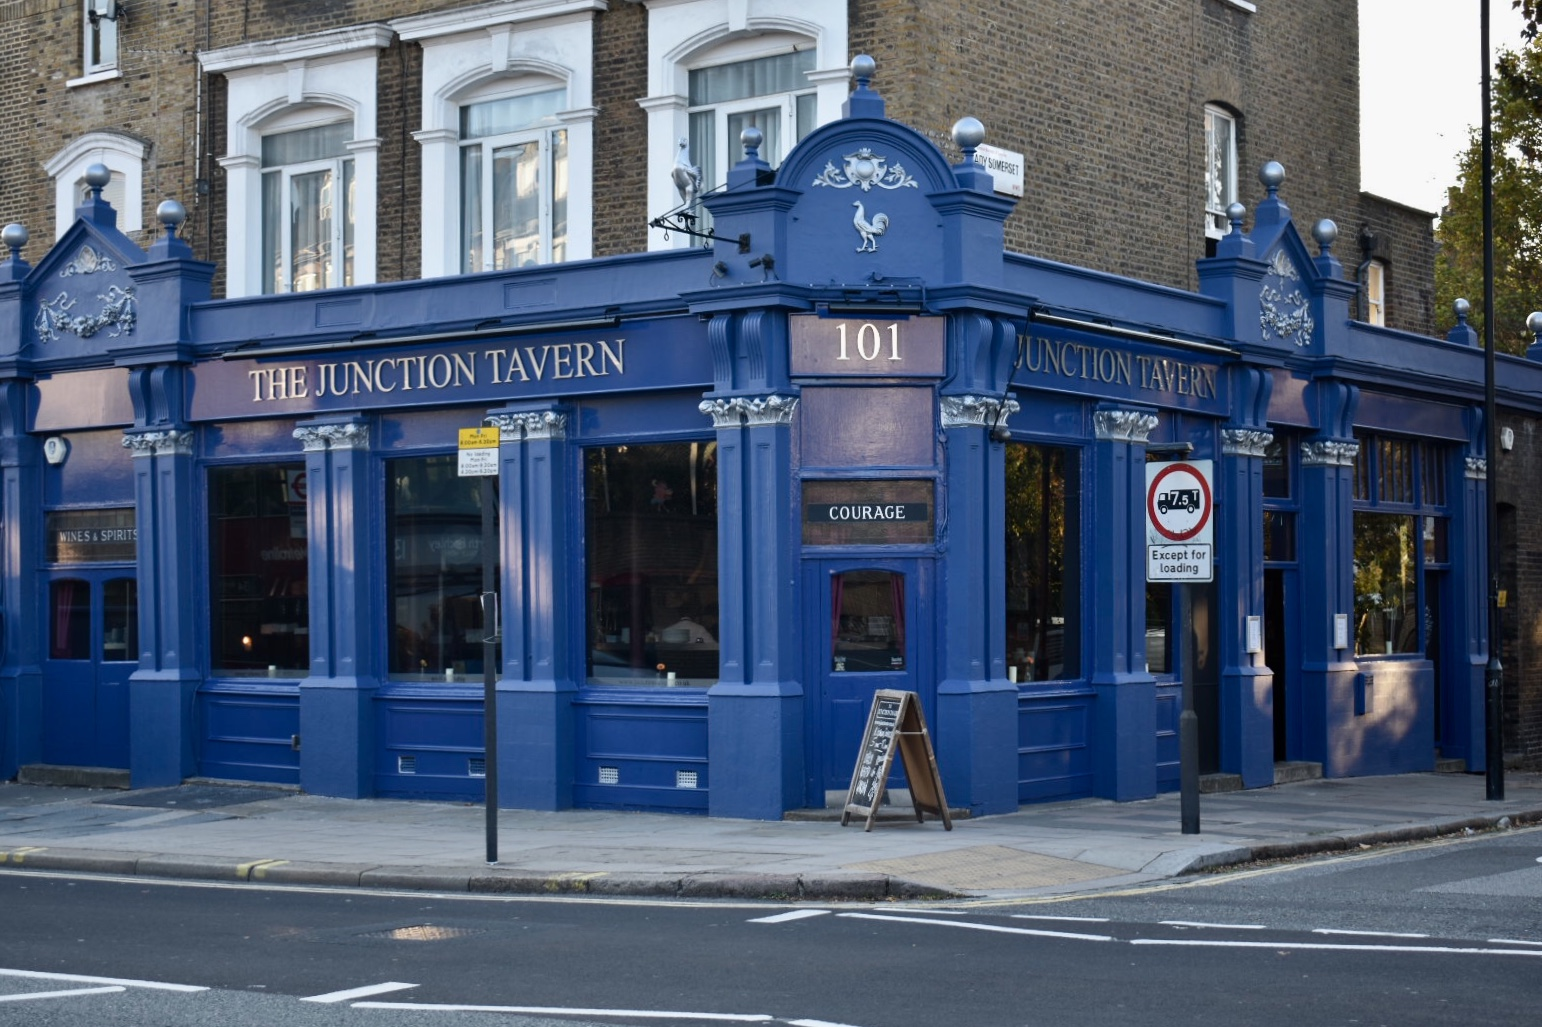 The Junction Tavern